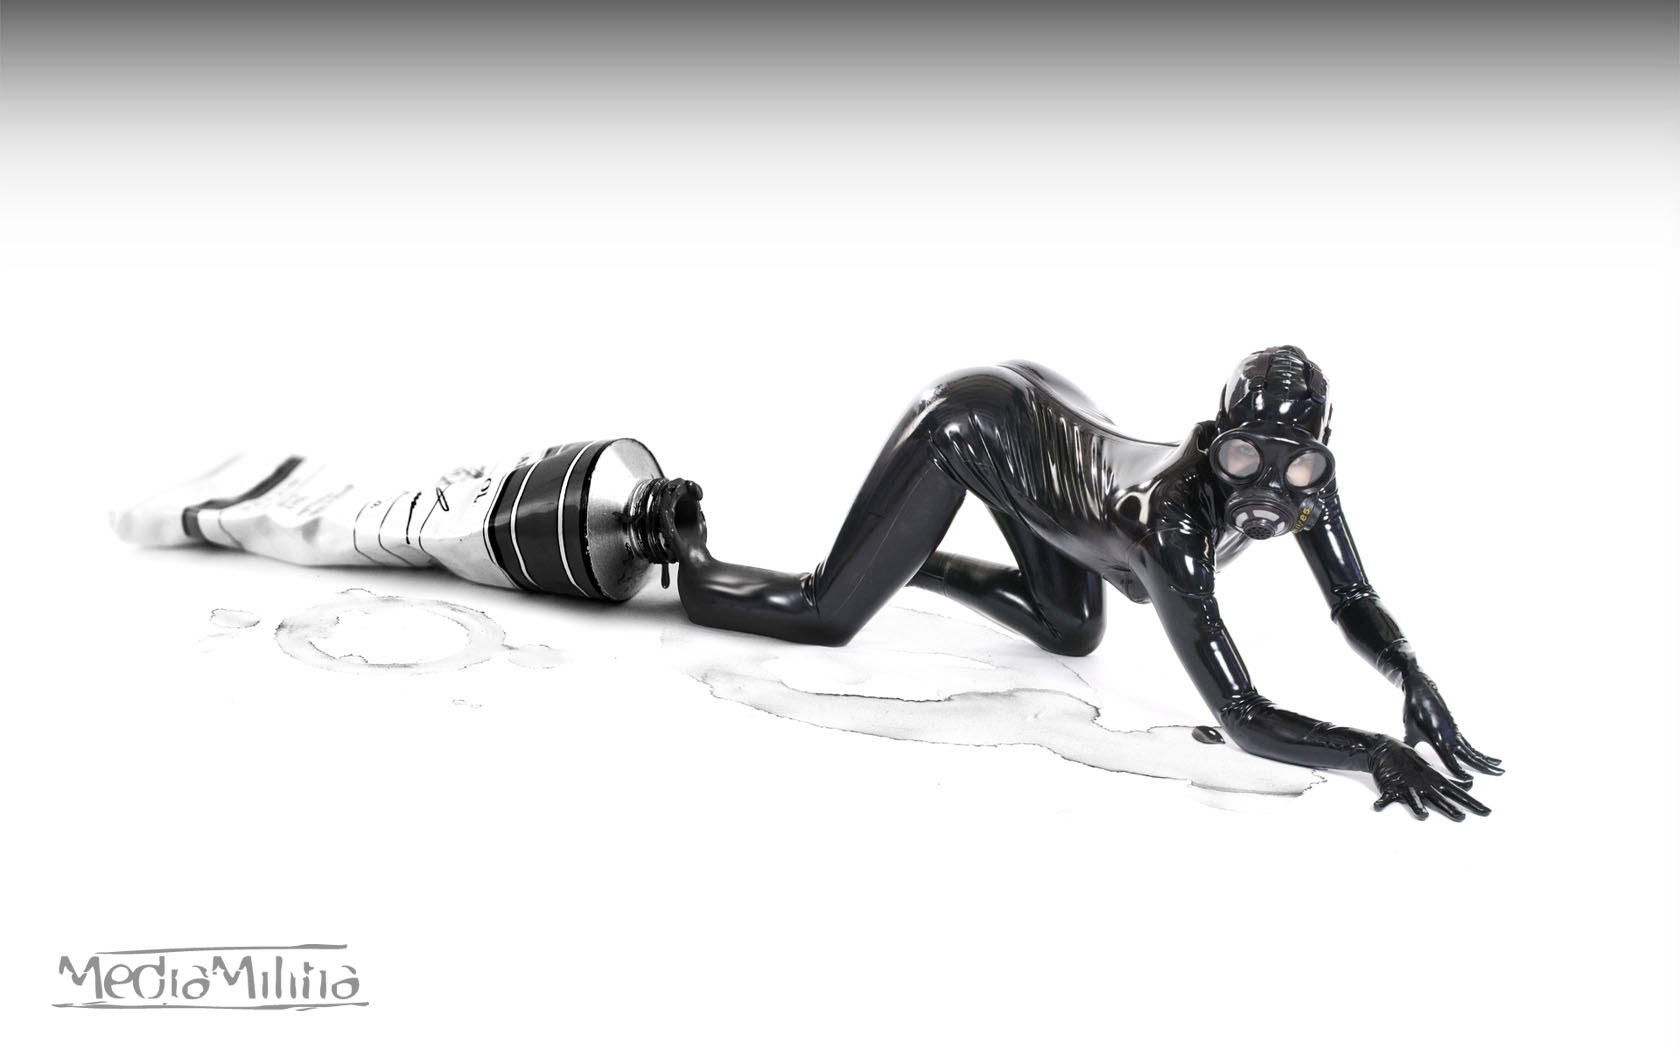 Widescreen Latex Images | Melaine Salone, 1680x1050 px